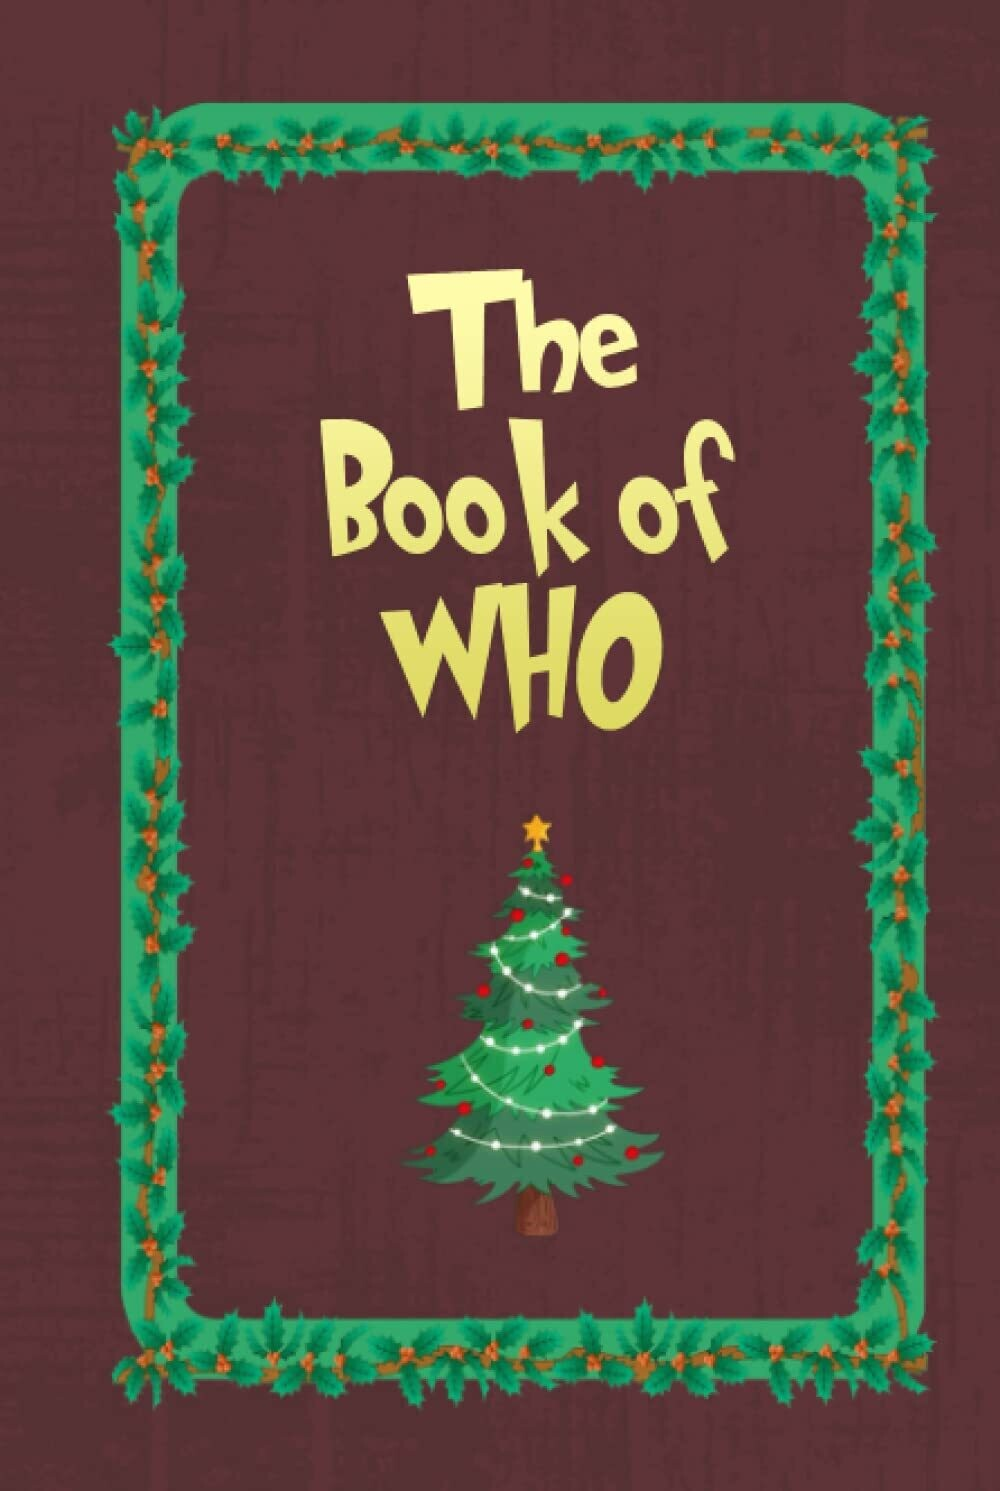 THE BOOK OF WHO (The Grinch) Hardback Book - Christmas Movie Prop Replica Journal Diary Santa List